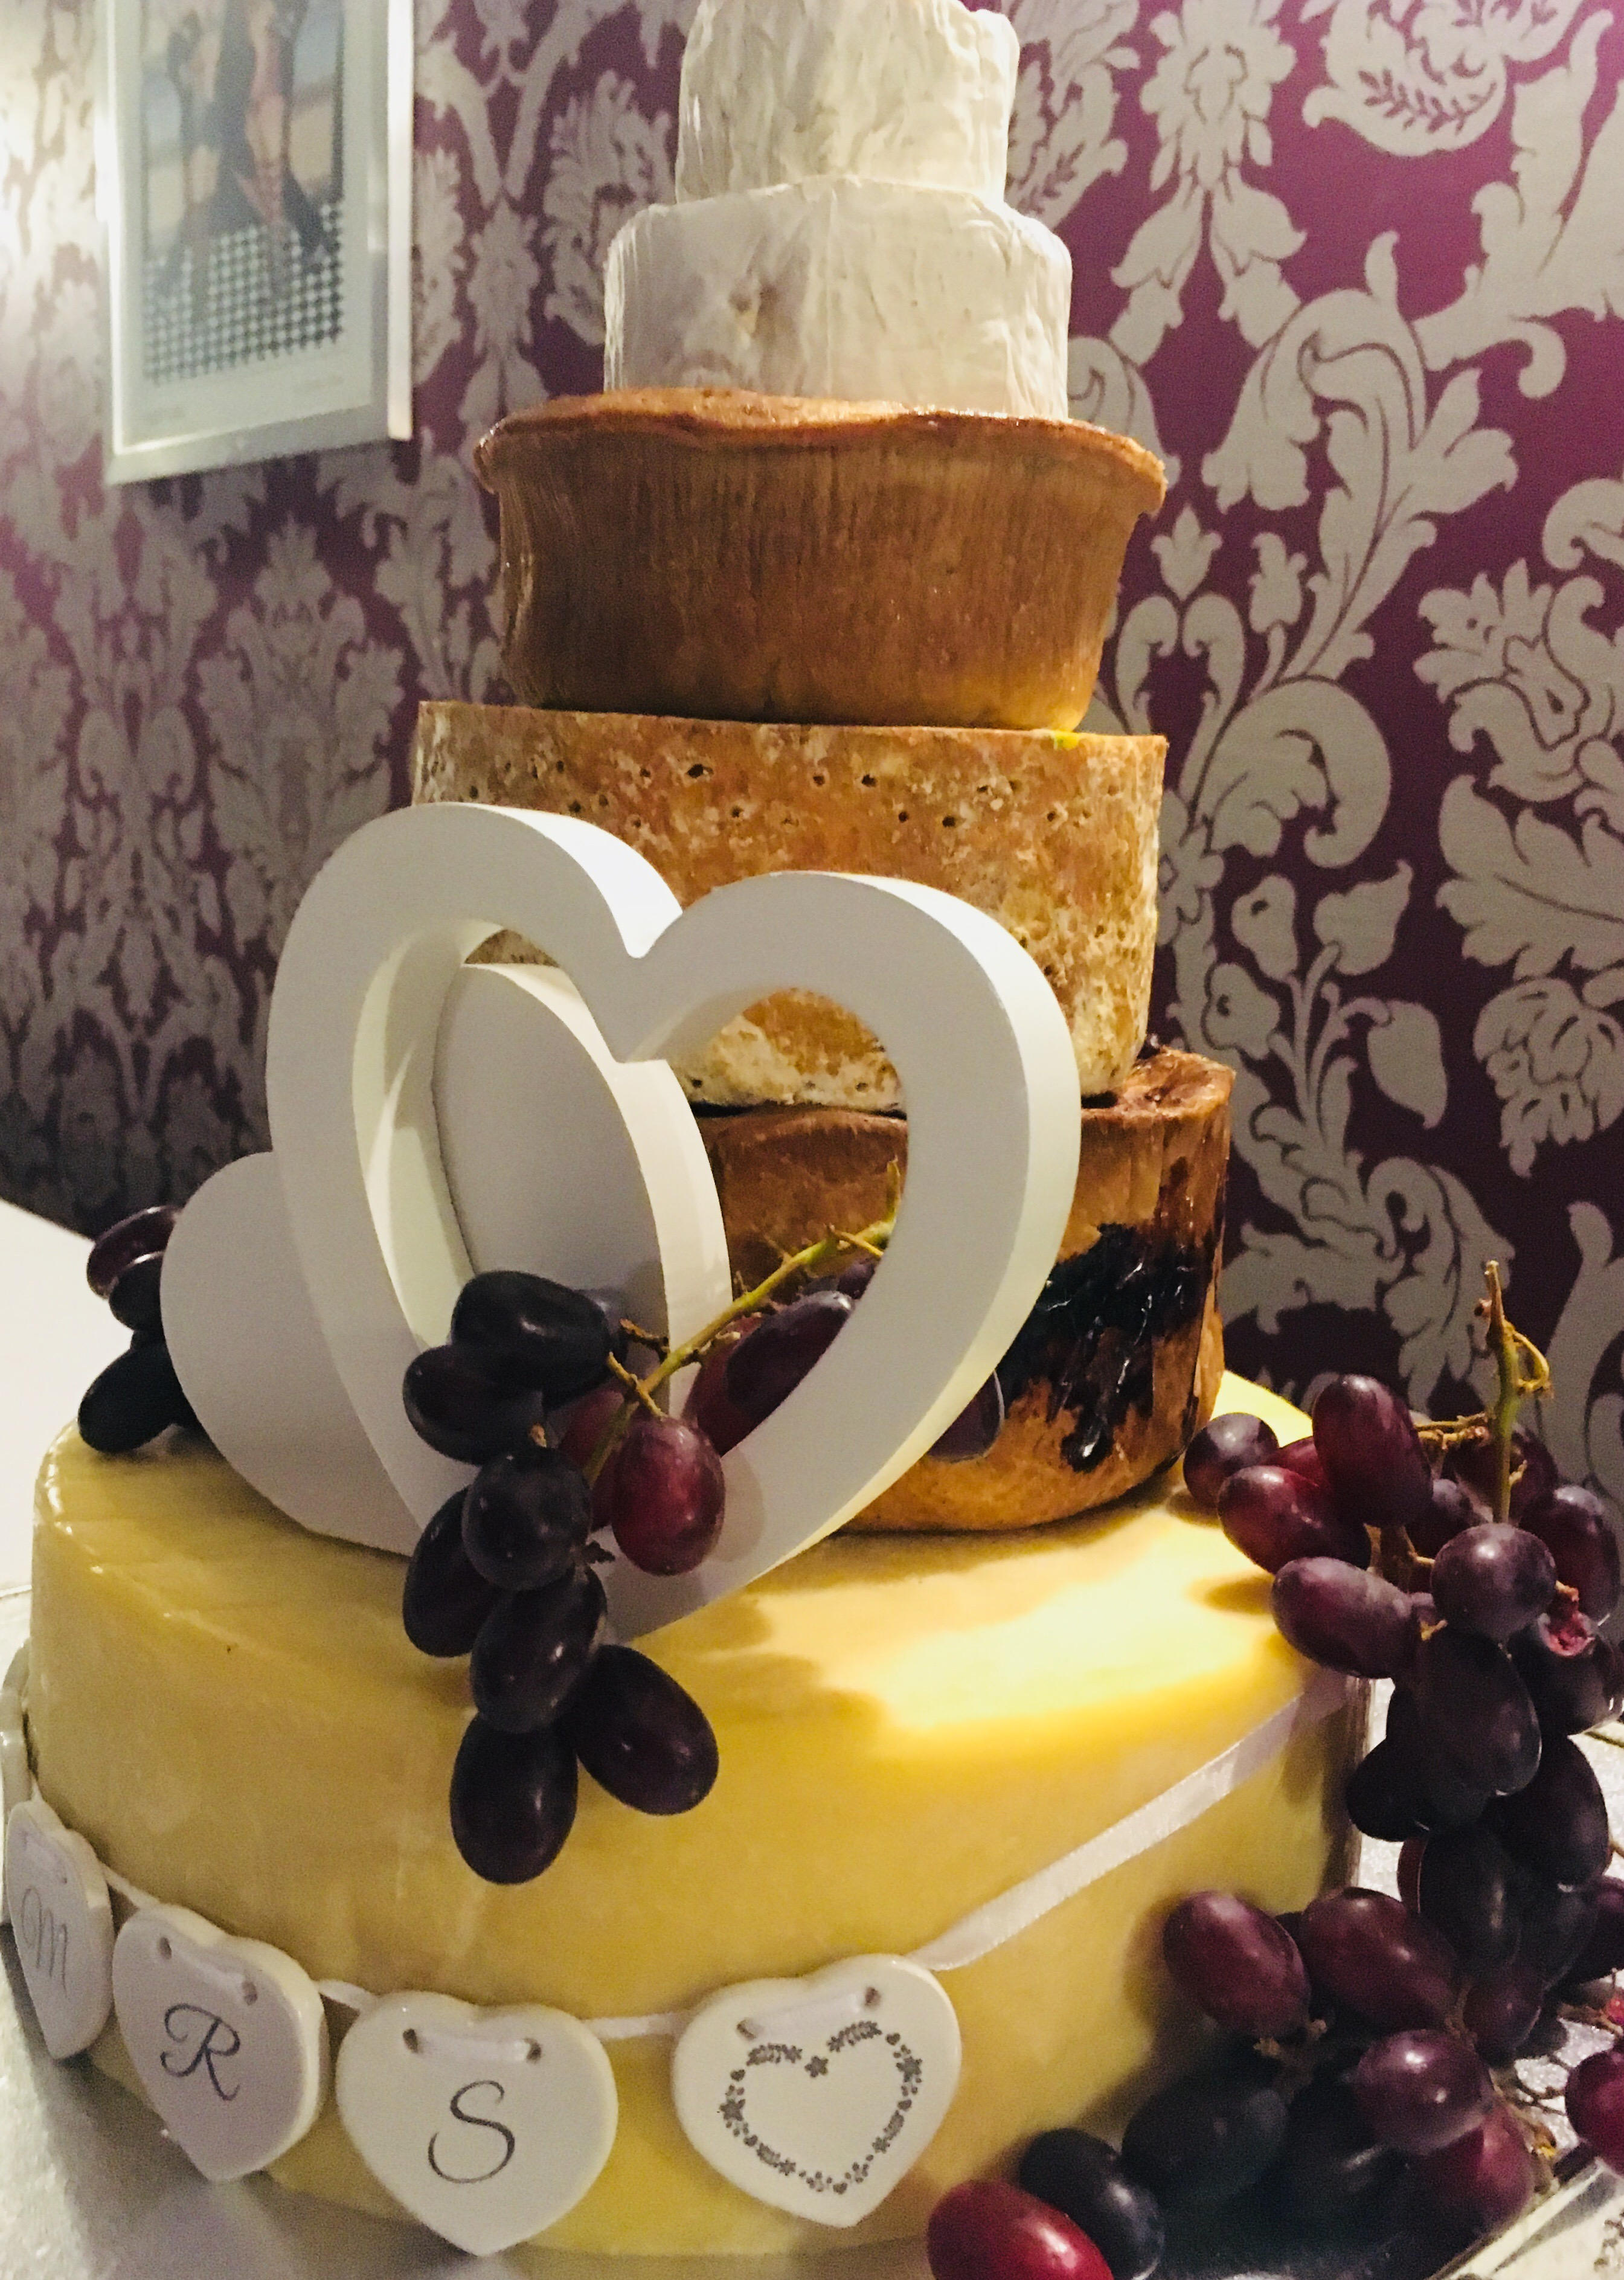 We Chose The Pork Pie And Cheese Celebration Cake 165 Which Combined 4 Cheeses 2 Pies Placing Order Was Simple Service Throughout Great